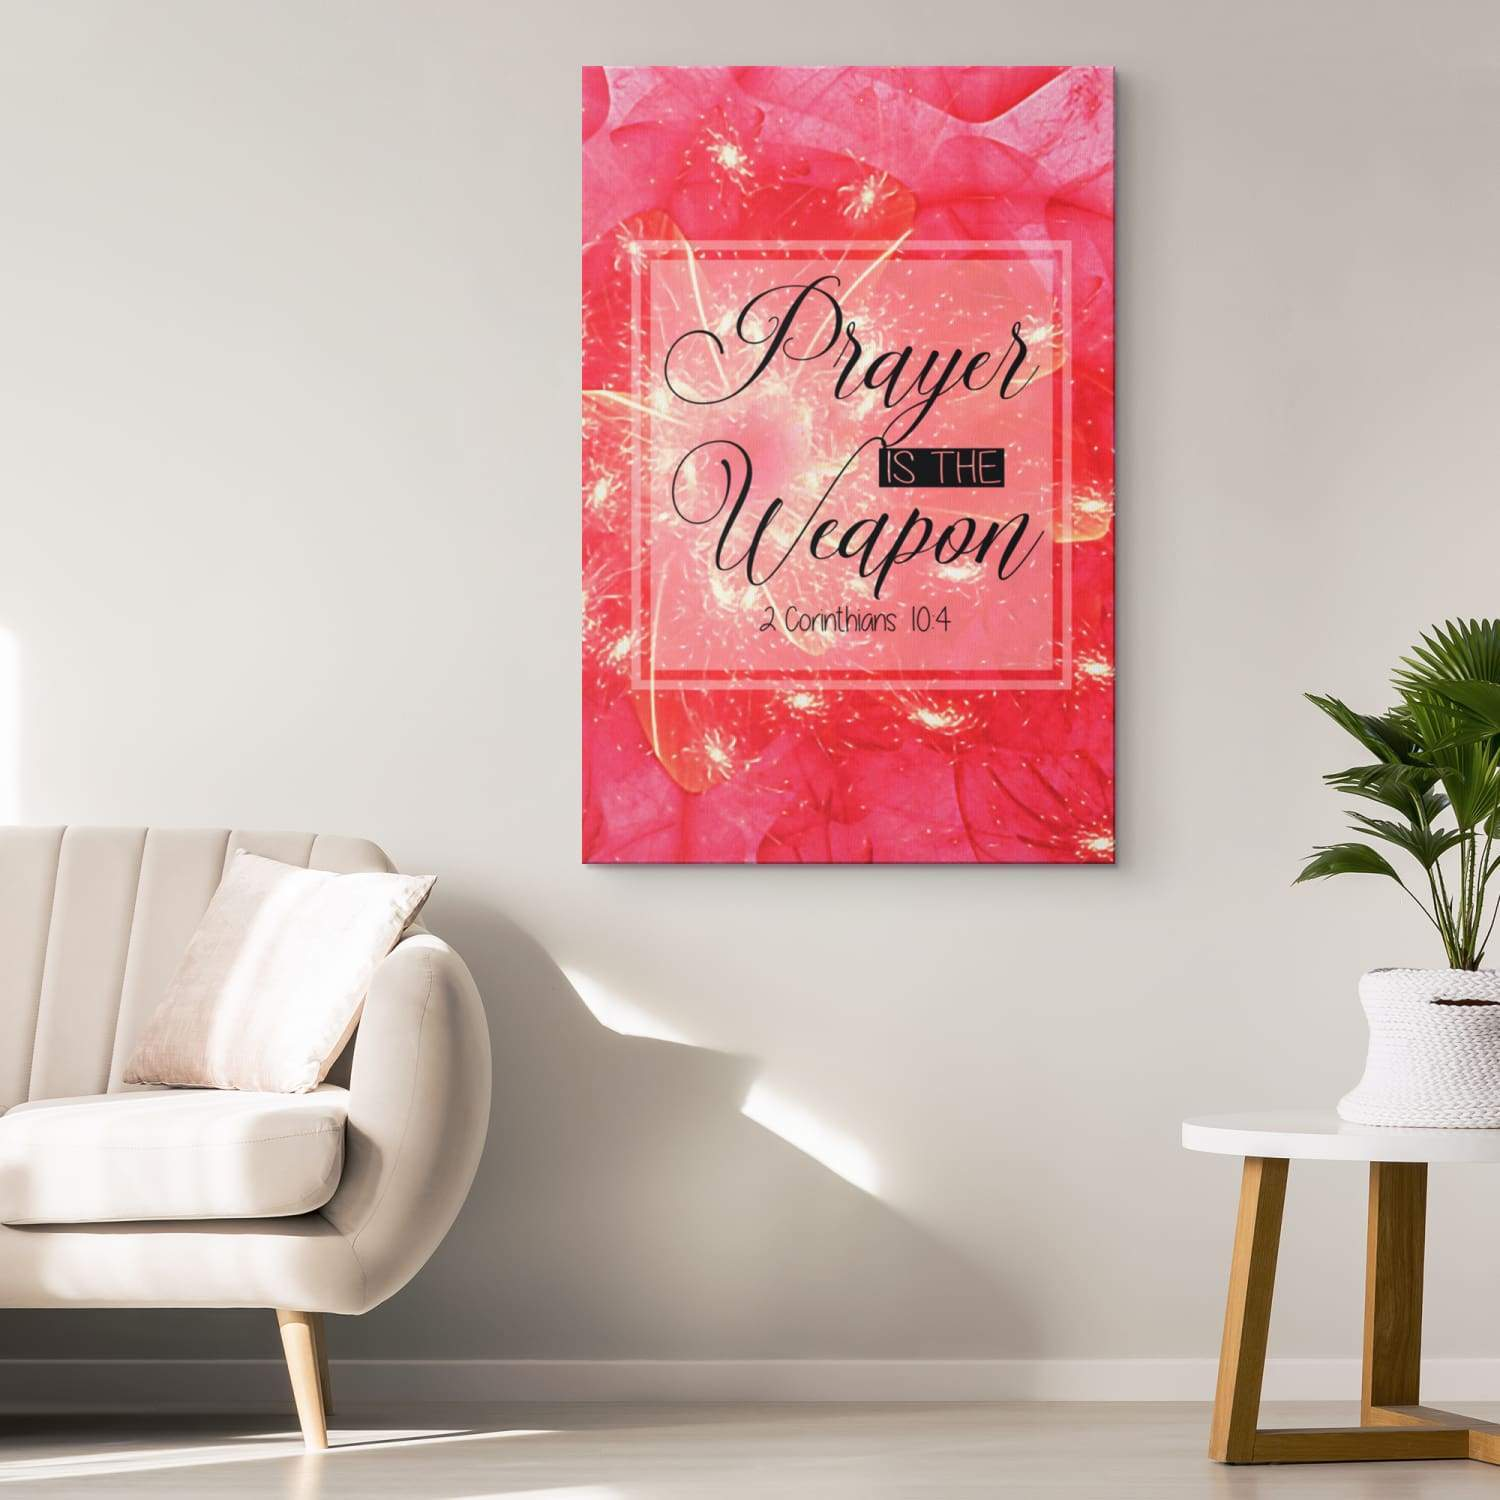 2 Corinthians 10:4 Prayer is the weapon canvas wall art - GnWarriors Clothing